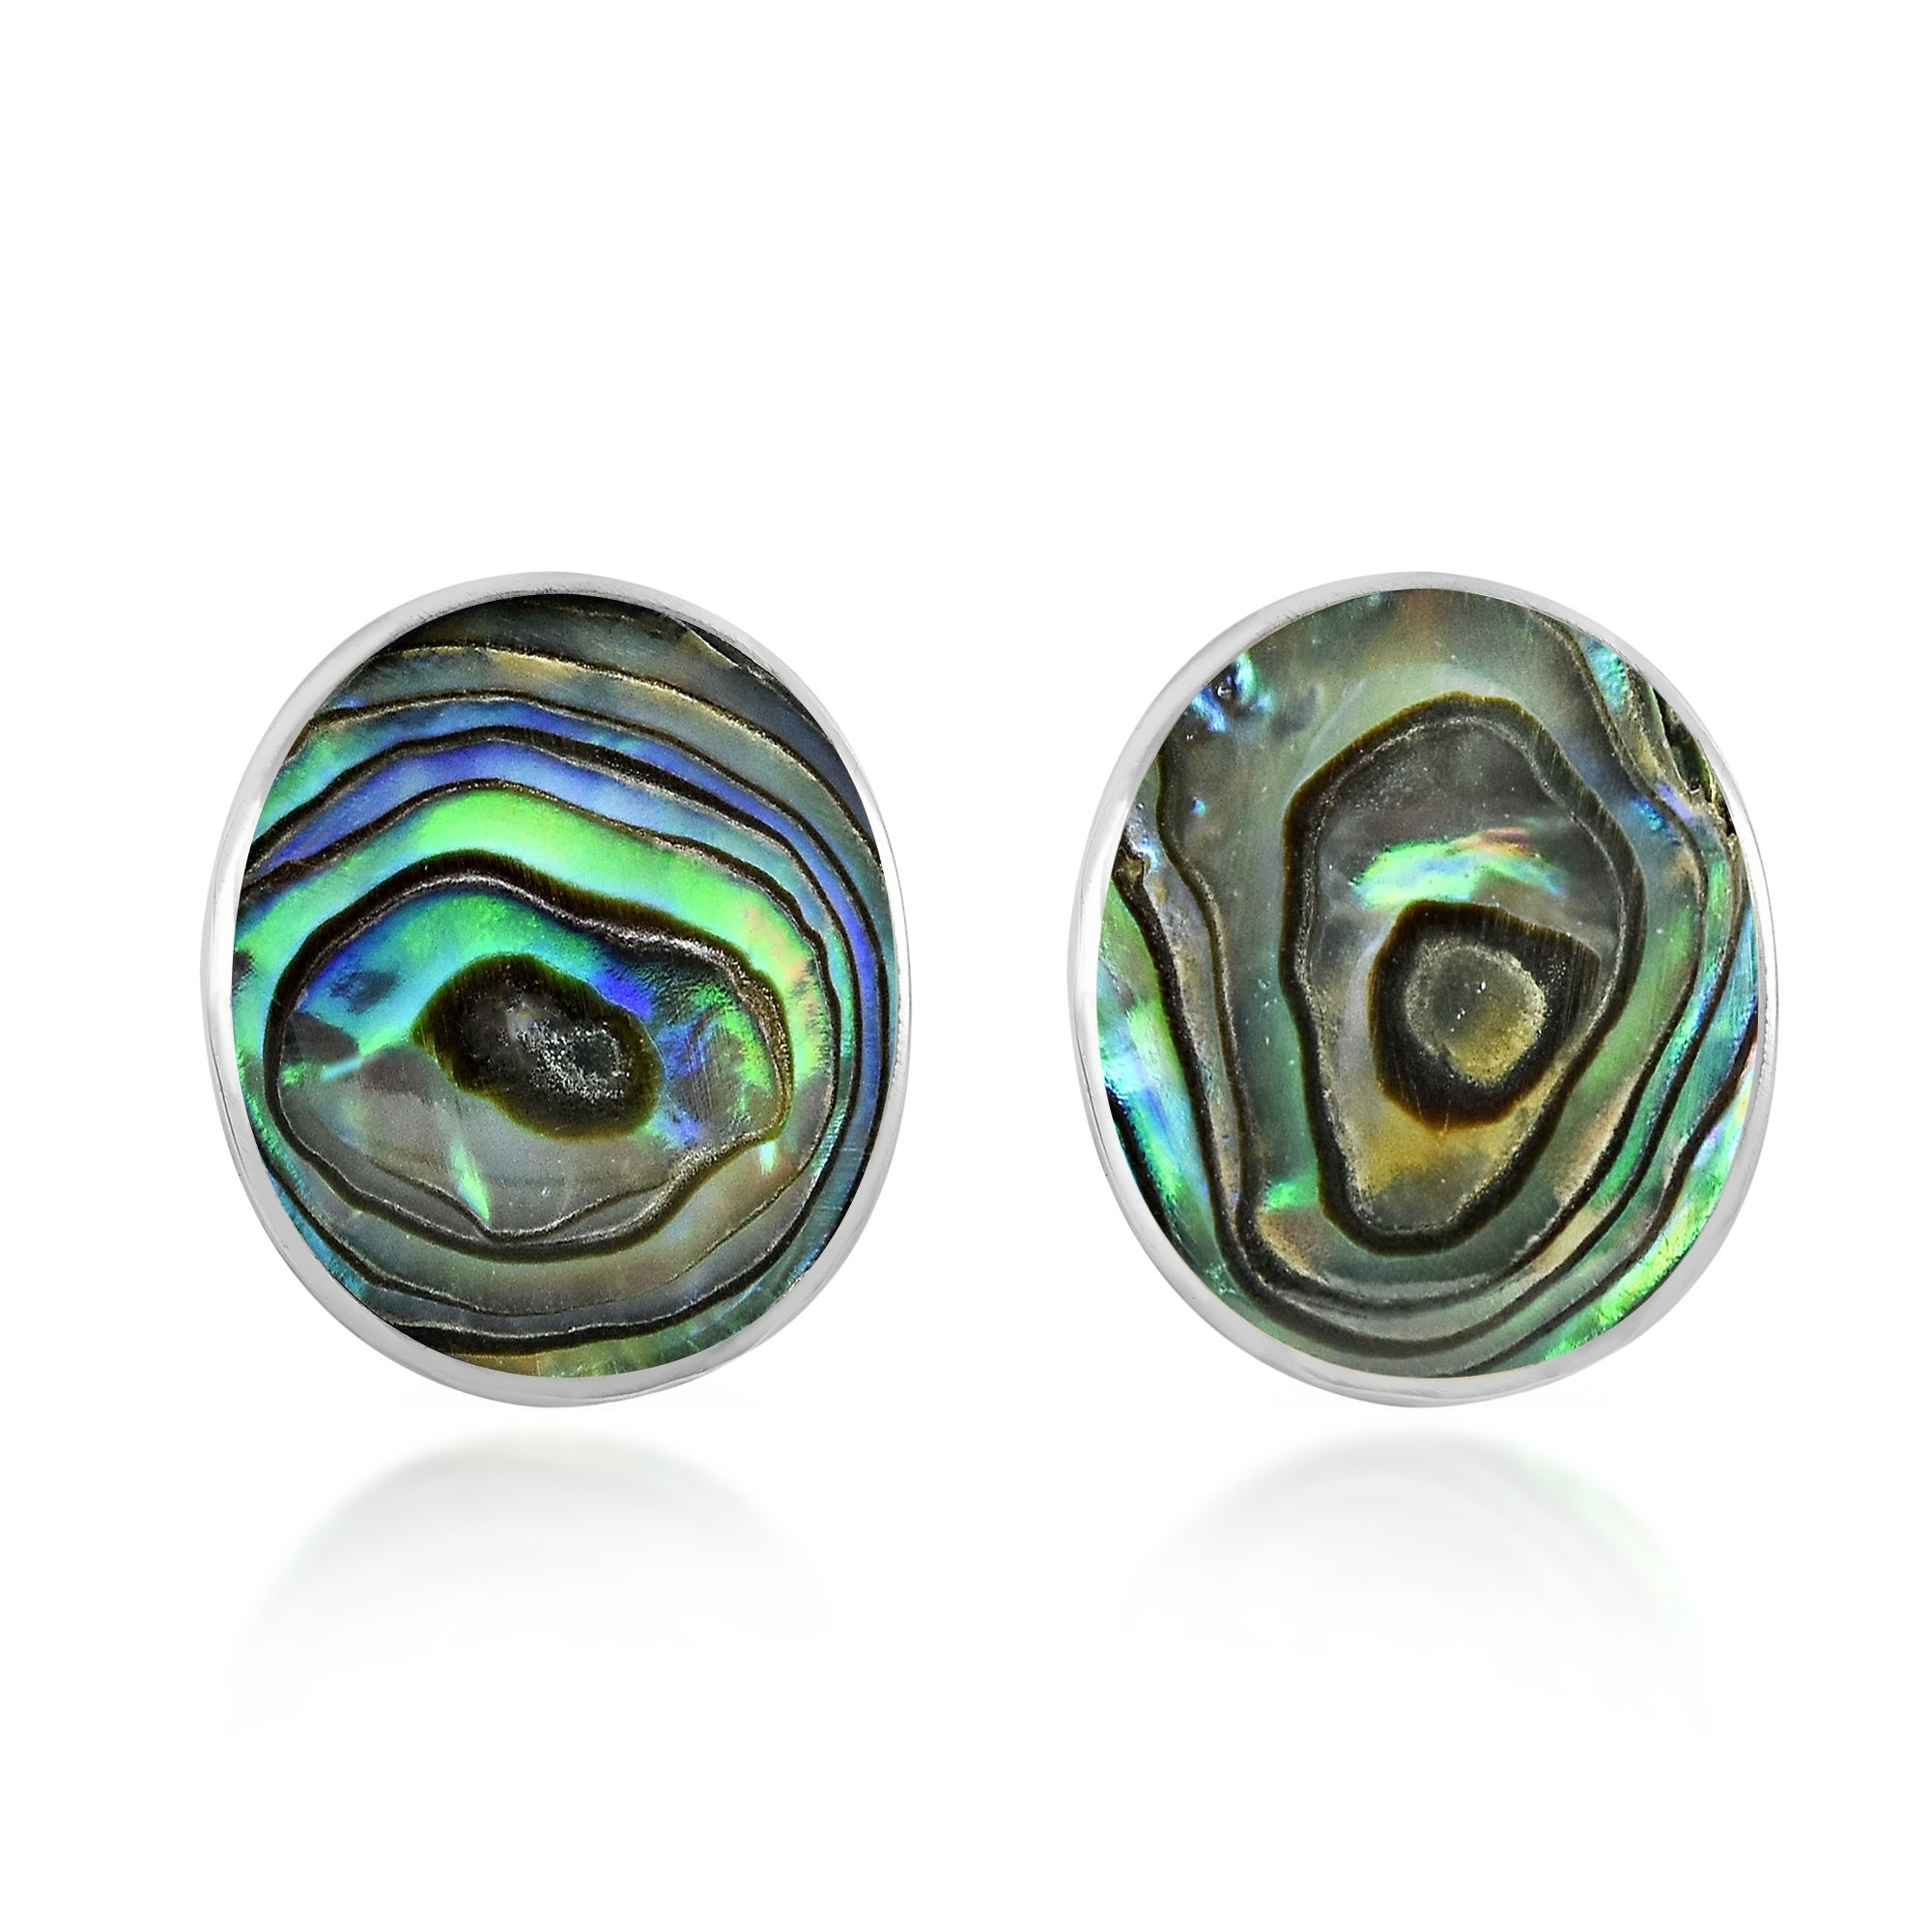 e000b0cc6 Shop Handmade Classic Oval Stone .925 Sterling Silver Stud Earrings - On  Sale - Free Shipping On Orders Over $45 - Overstock - 9556281